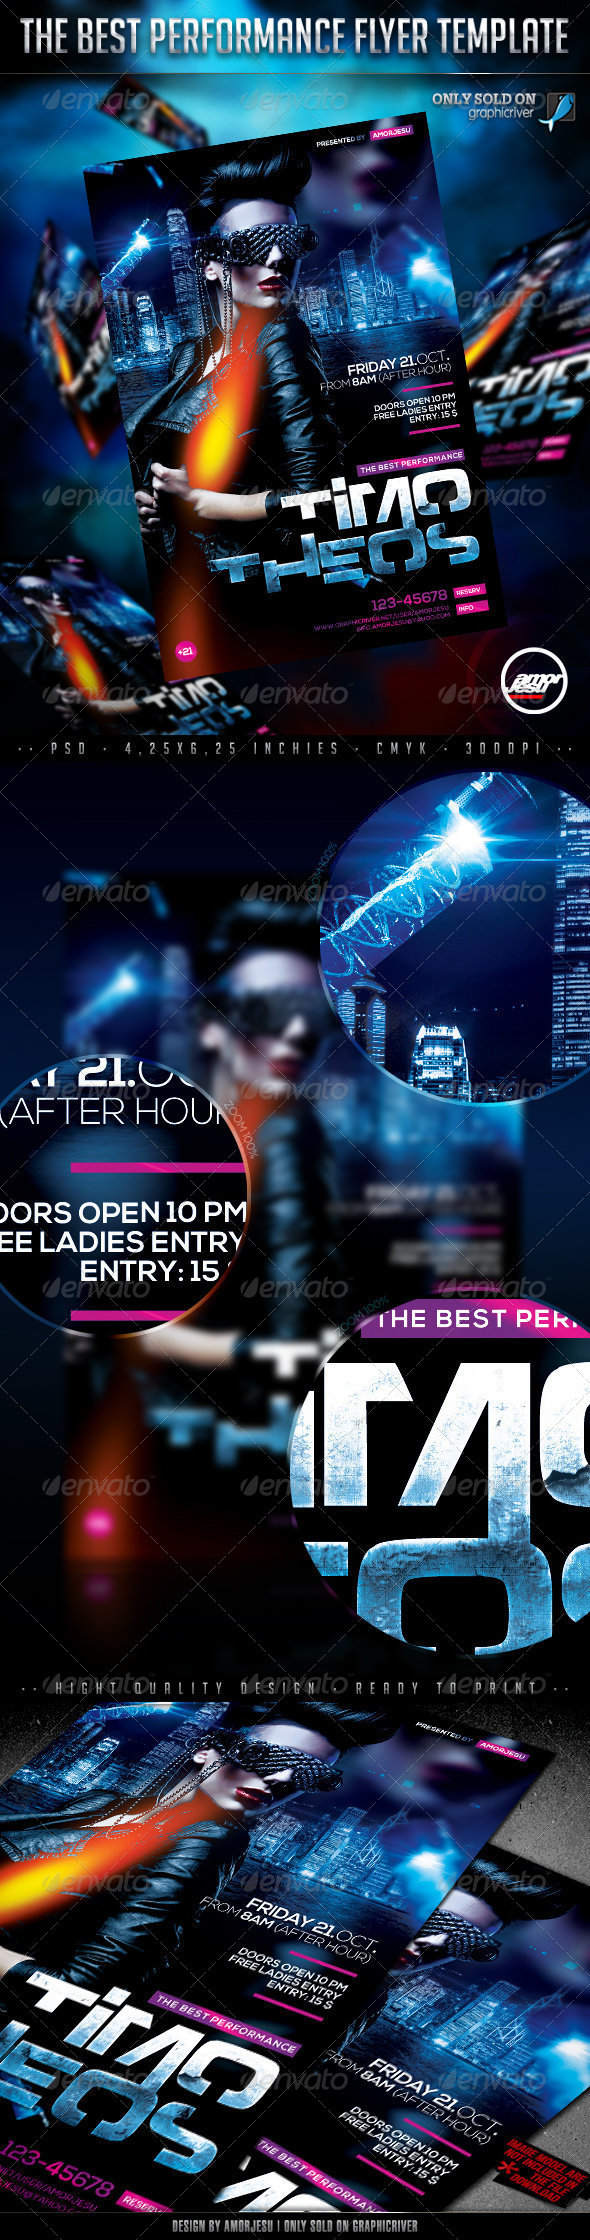 The Performance Flyer Template - Clubs & Parties Events